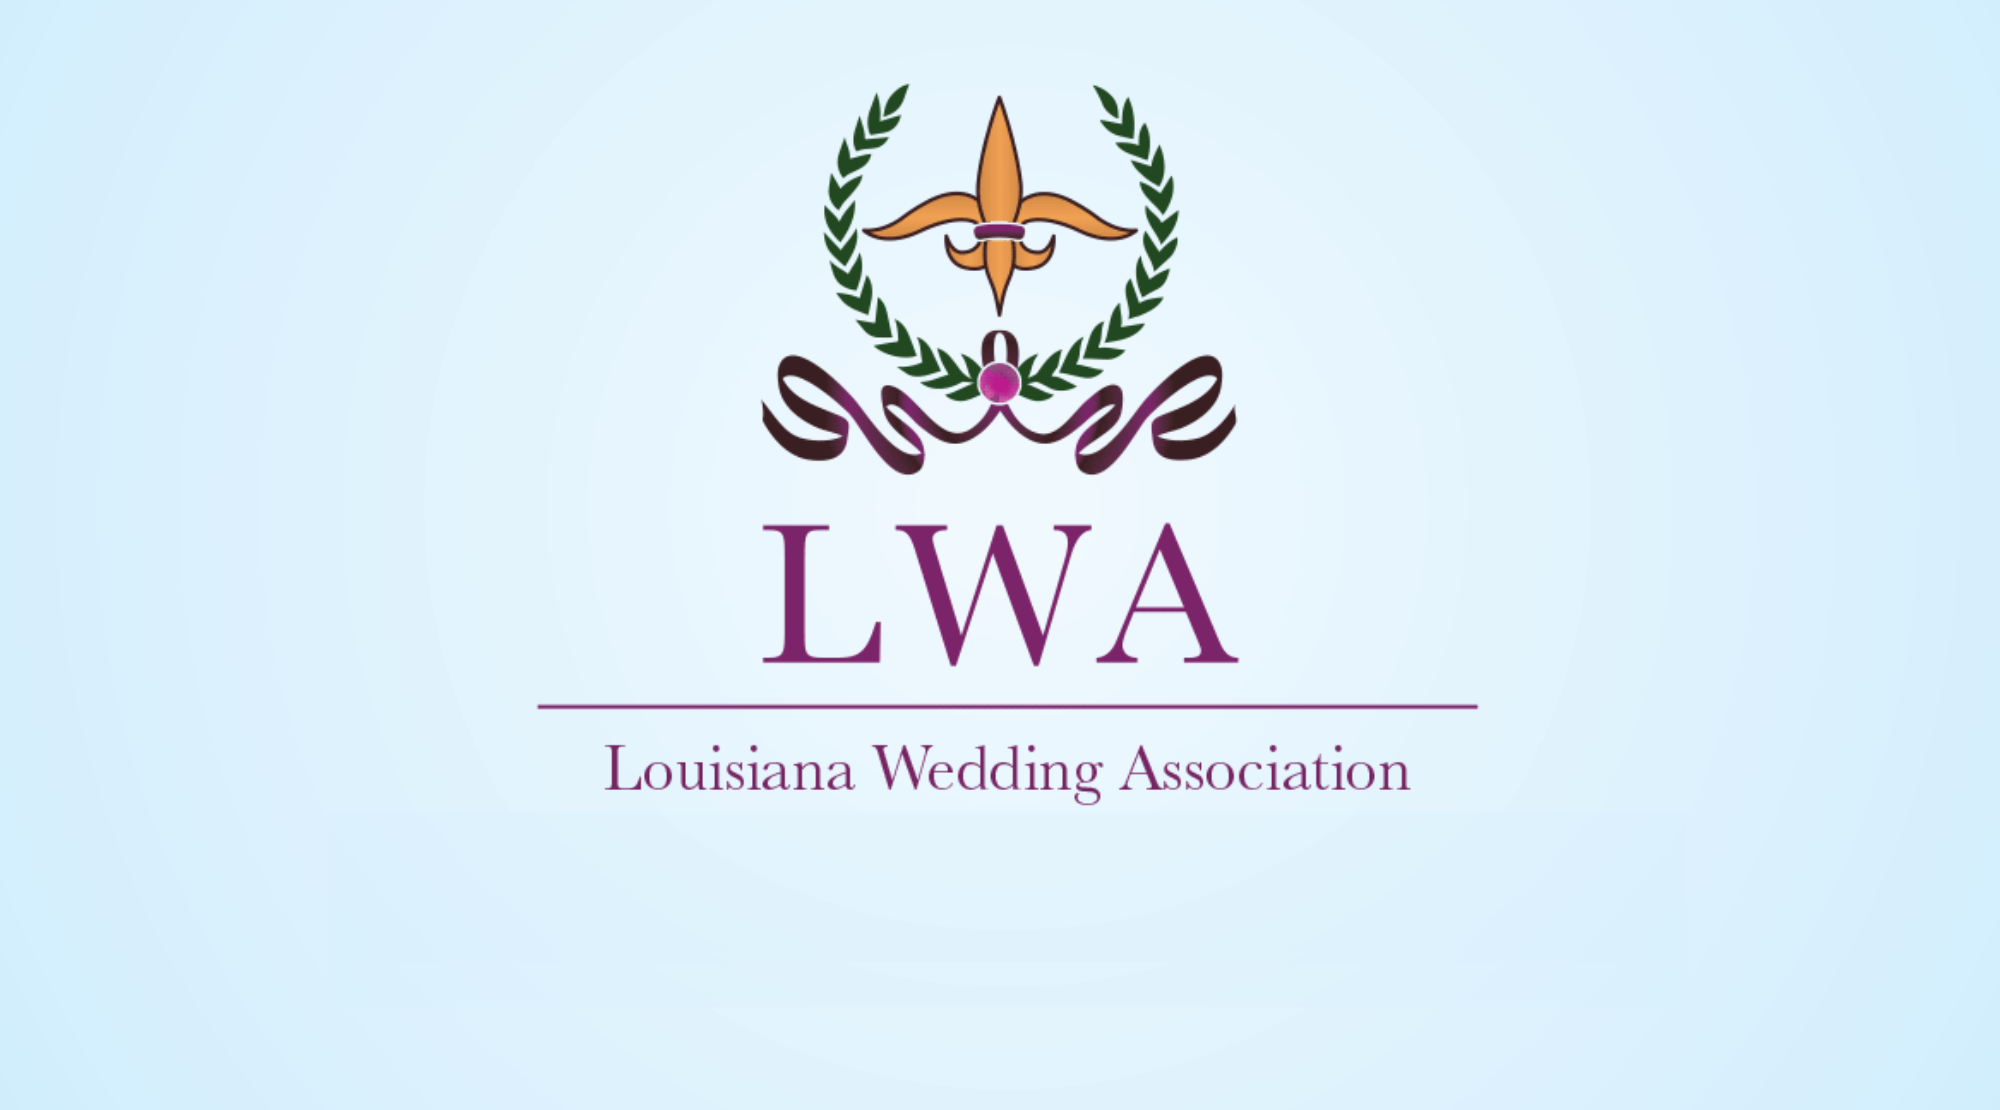 Louisiana Wedding Association